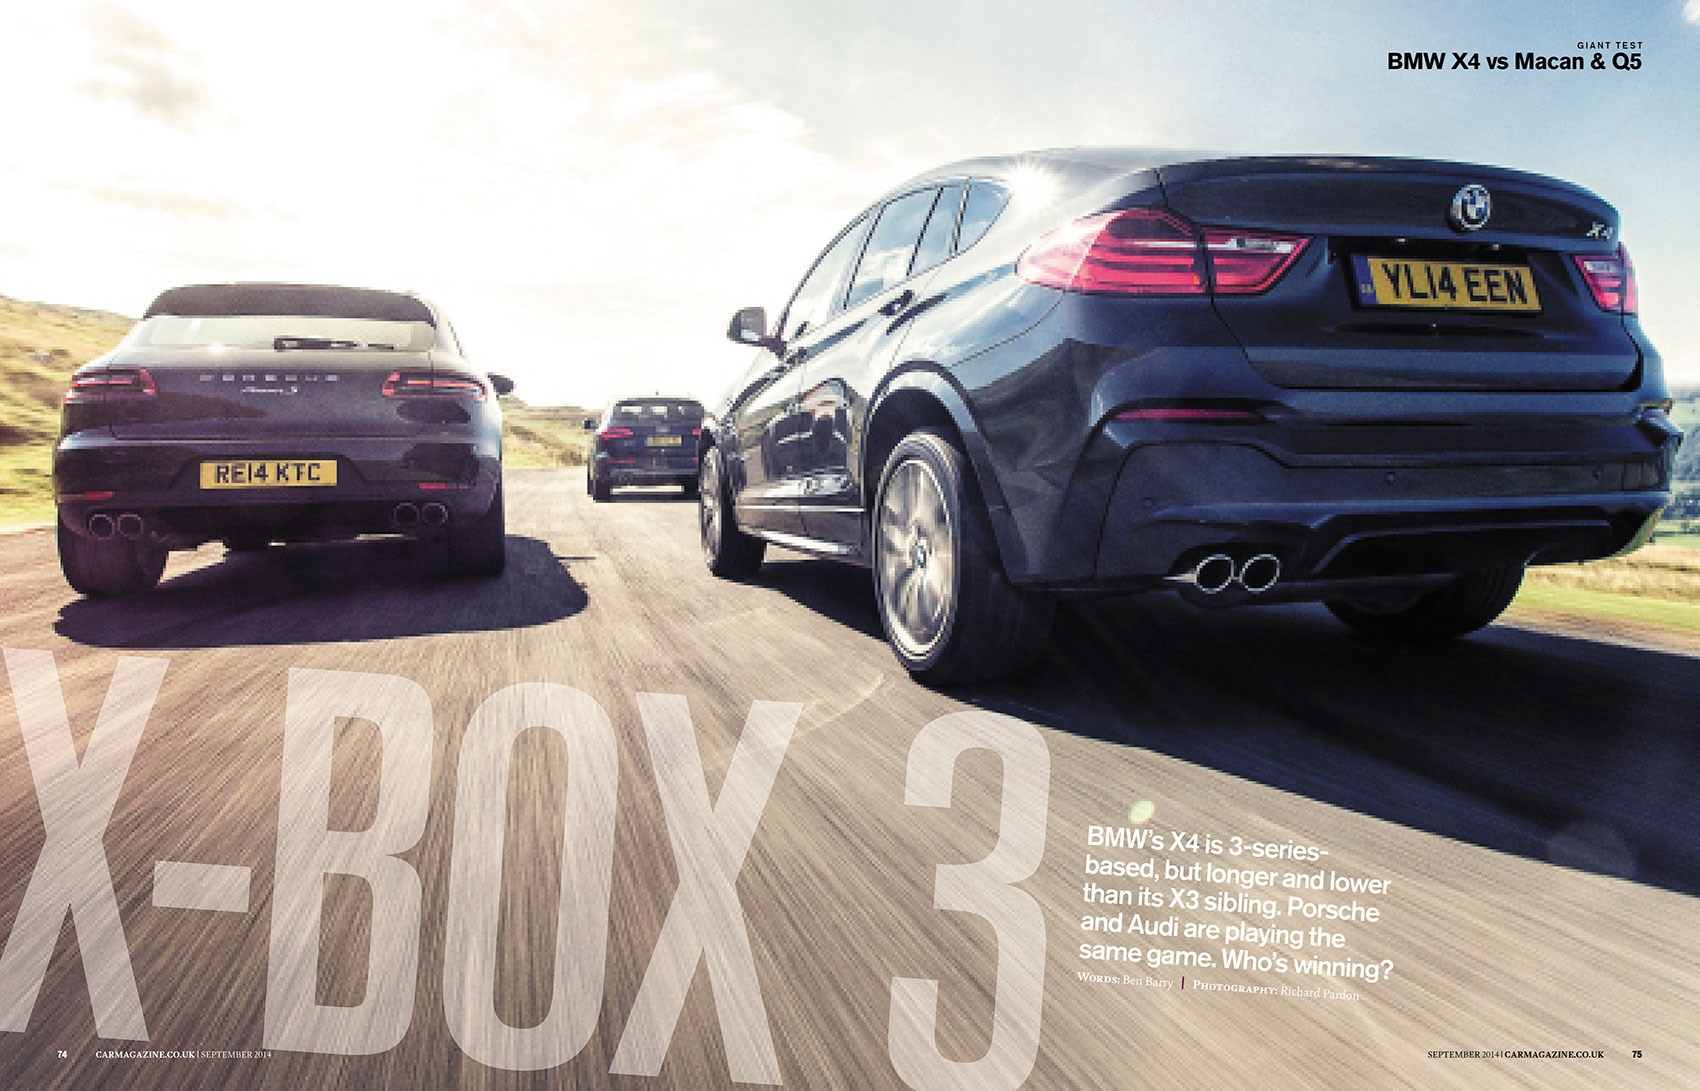 Porsche Macan vs BMW X4 vs Audi Q5 triple test in CAR magazine, September 2014